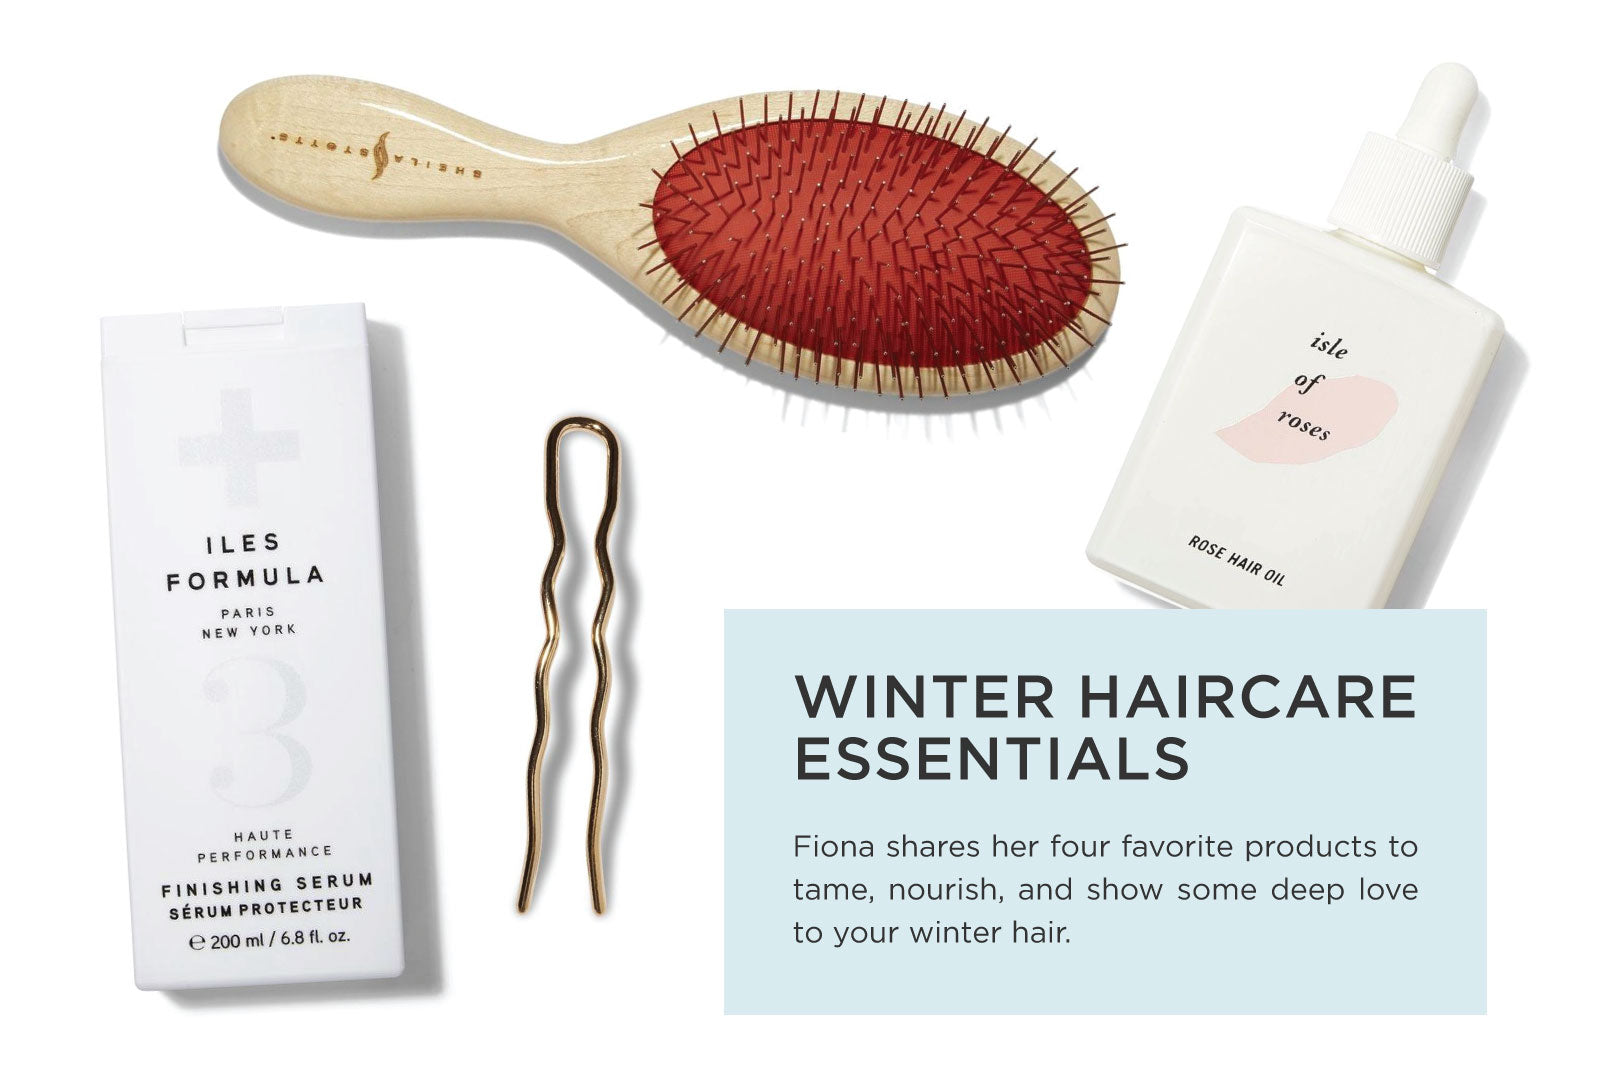 WINTER HAIRCARE ESSENTIALS